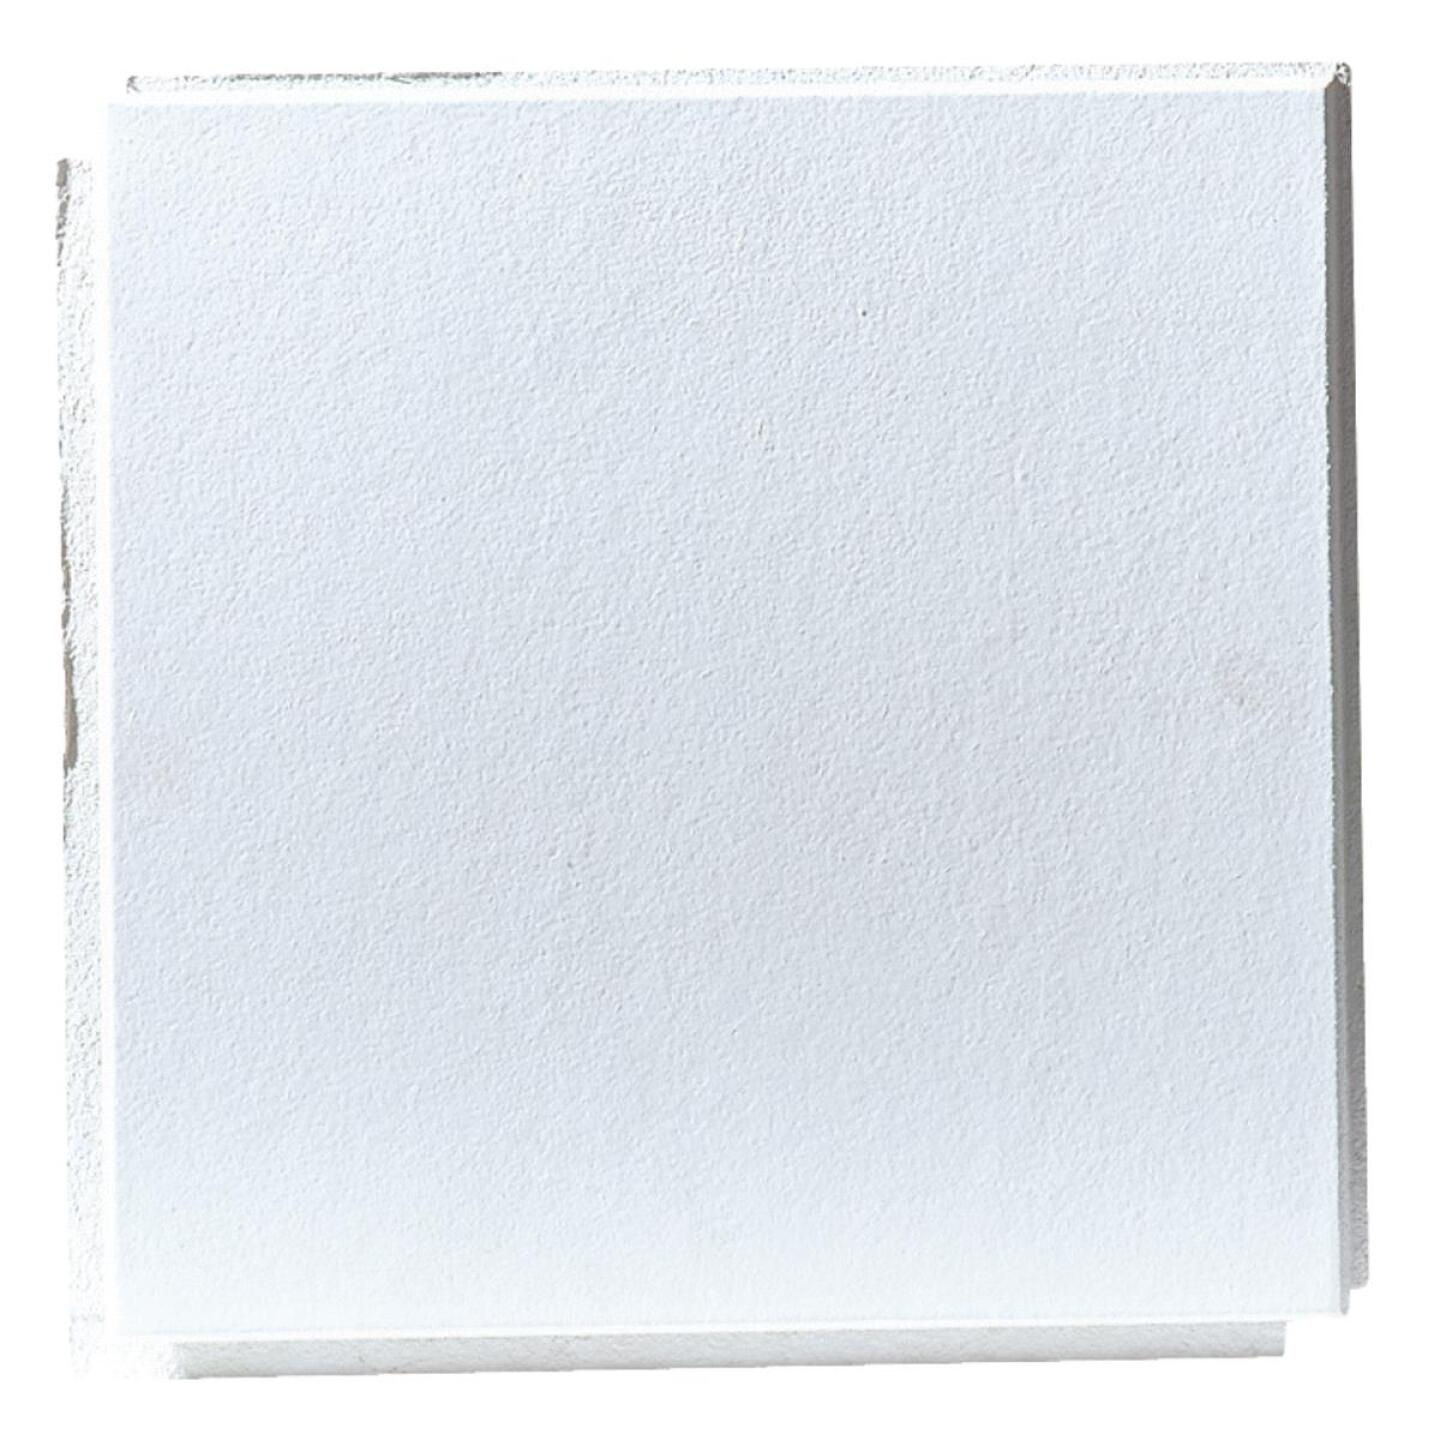 BP Silencio Chablis 12 In. x 12 In. White Wood Fiber Nonsuspended Ceiling Tile (32-Count) Image 3